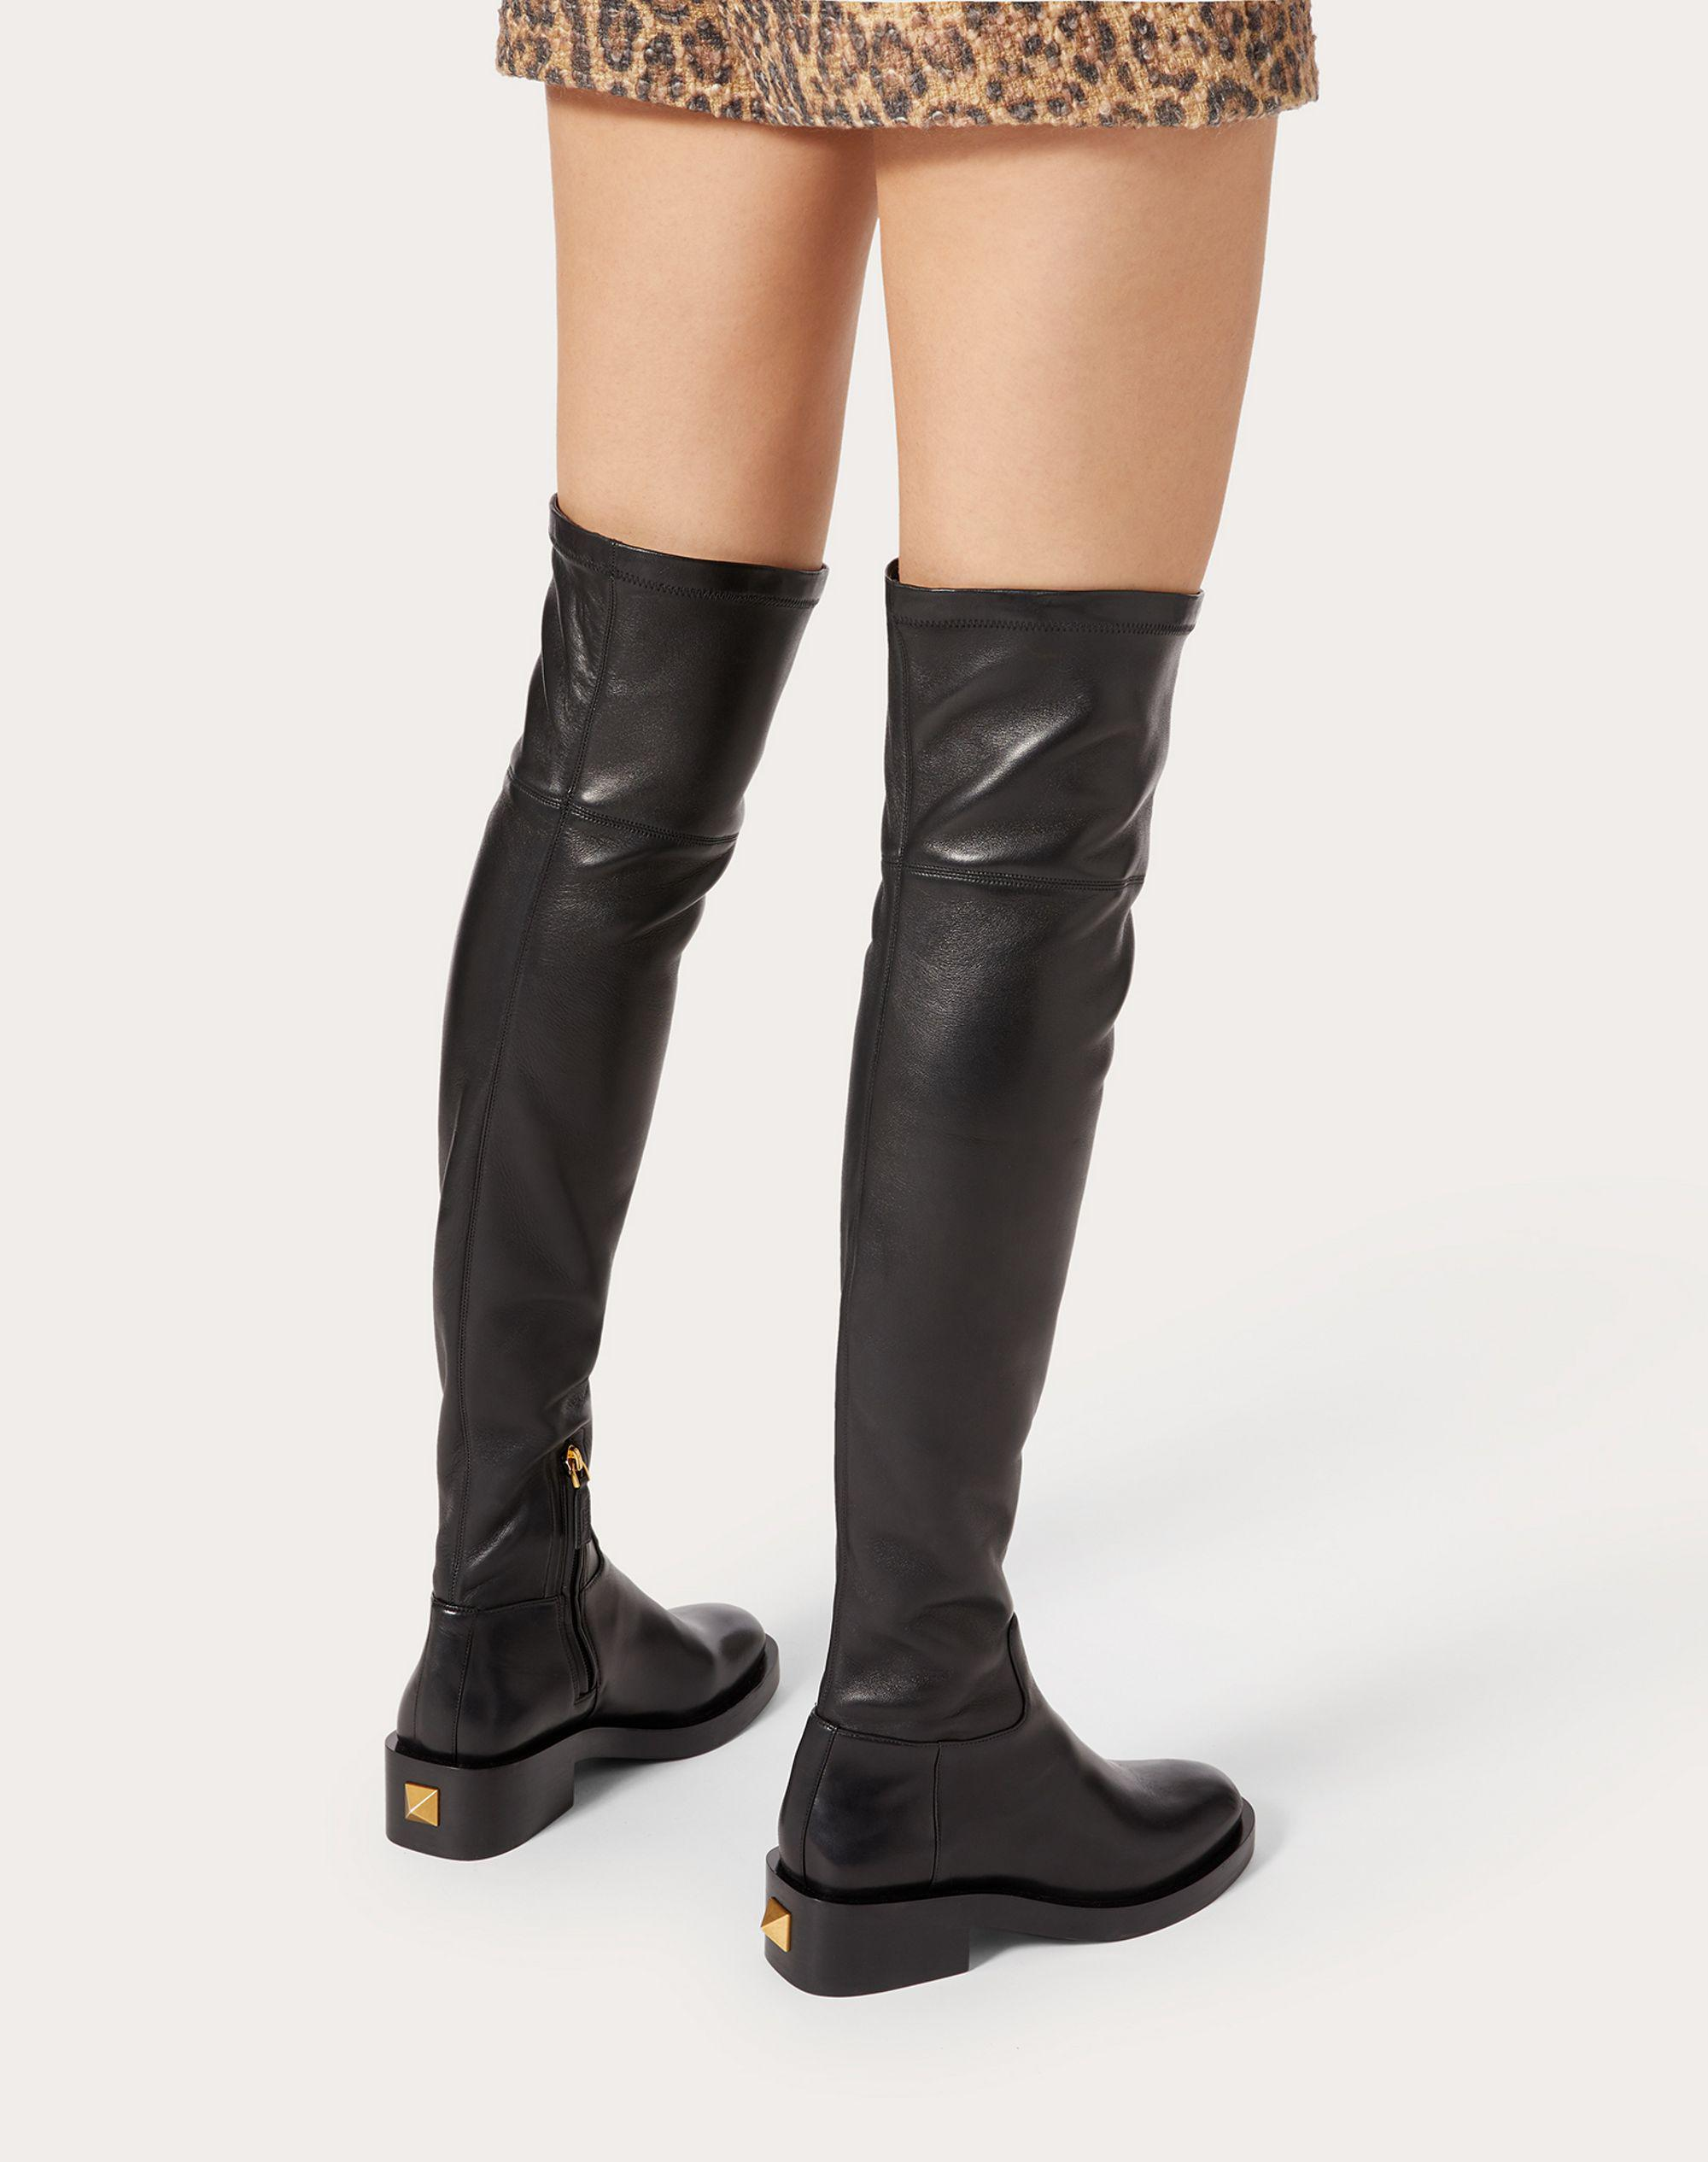 ROMAN STUD STRETCH NAPPA OVER-THE-KNEE BOOT 30MM 5